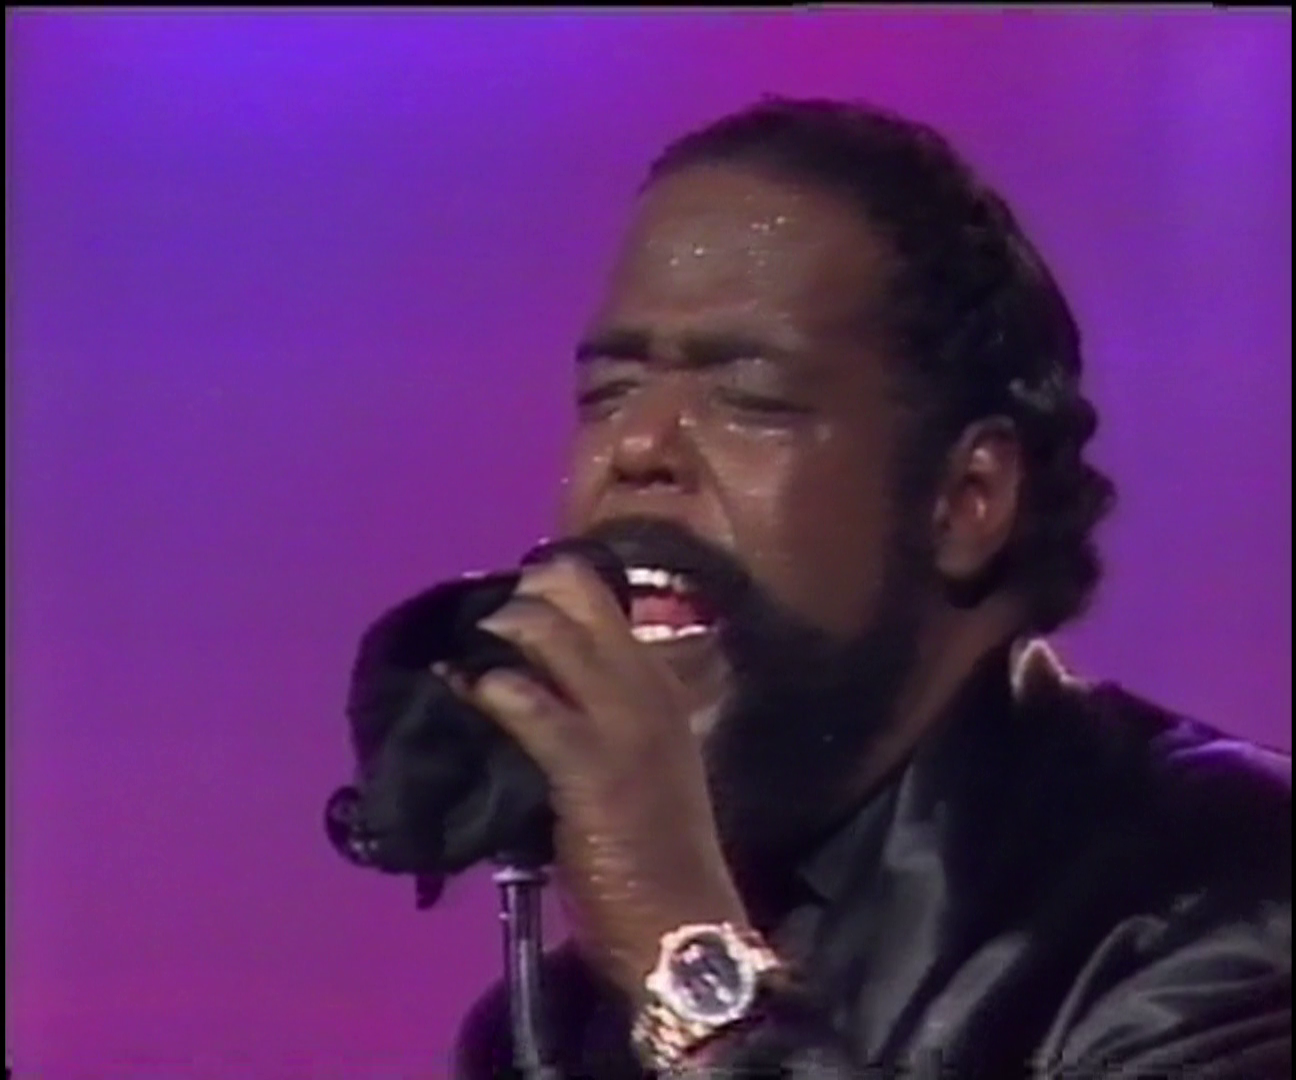 2004 Barry White - The Man And His Music featuring Love Unlimited (2012) [BDRip 1080p] 4